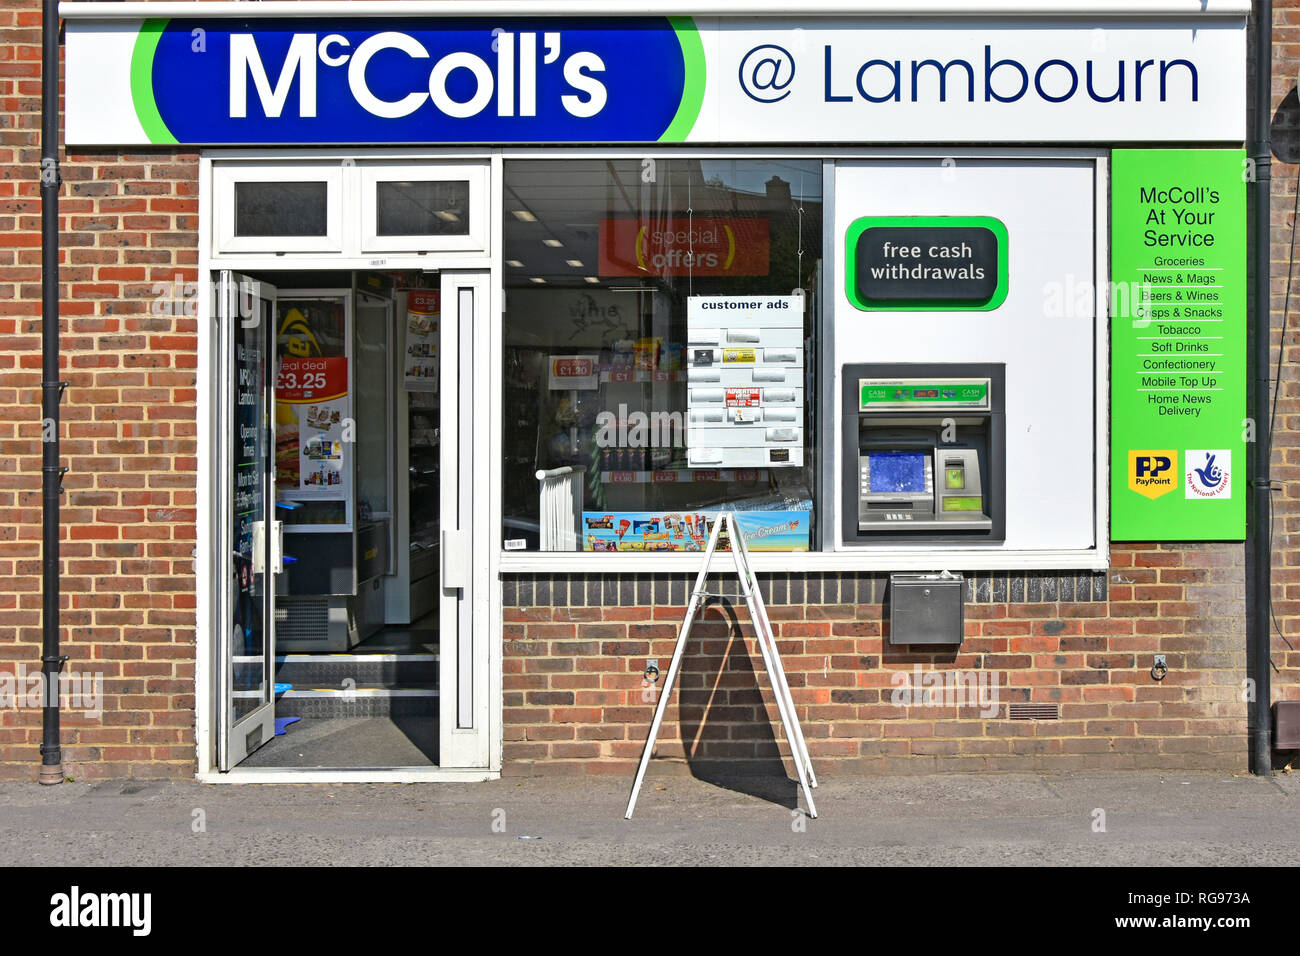 McColls convenience store & newsagent shop front window with